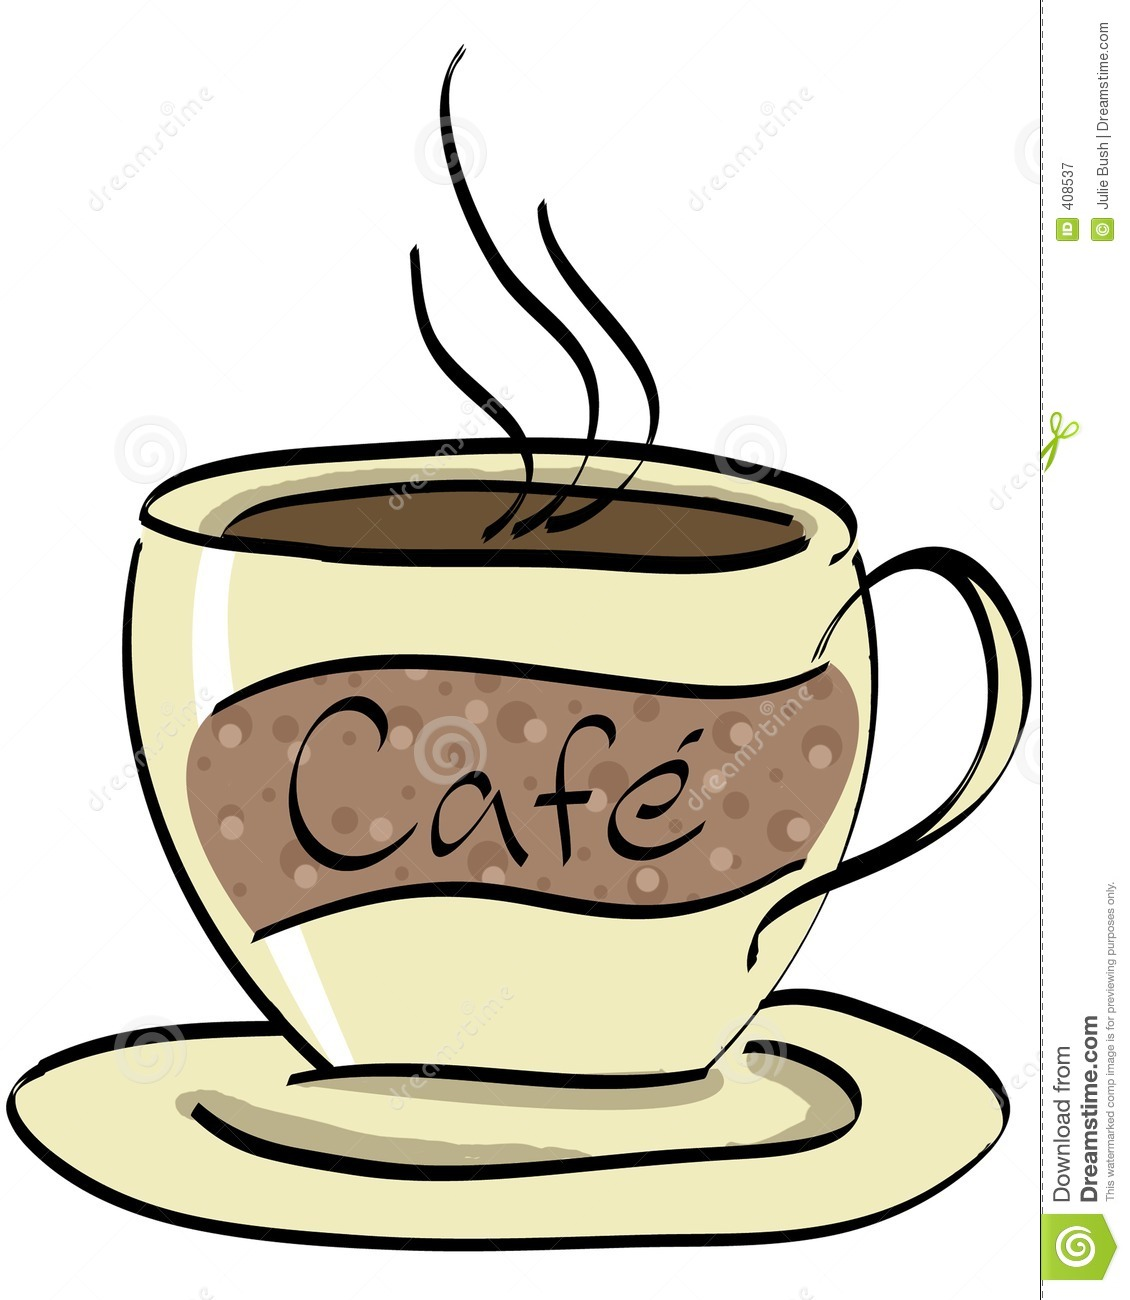 Cafe clipart clip art, Cafe clip art Transparent FREE for.